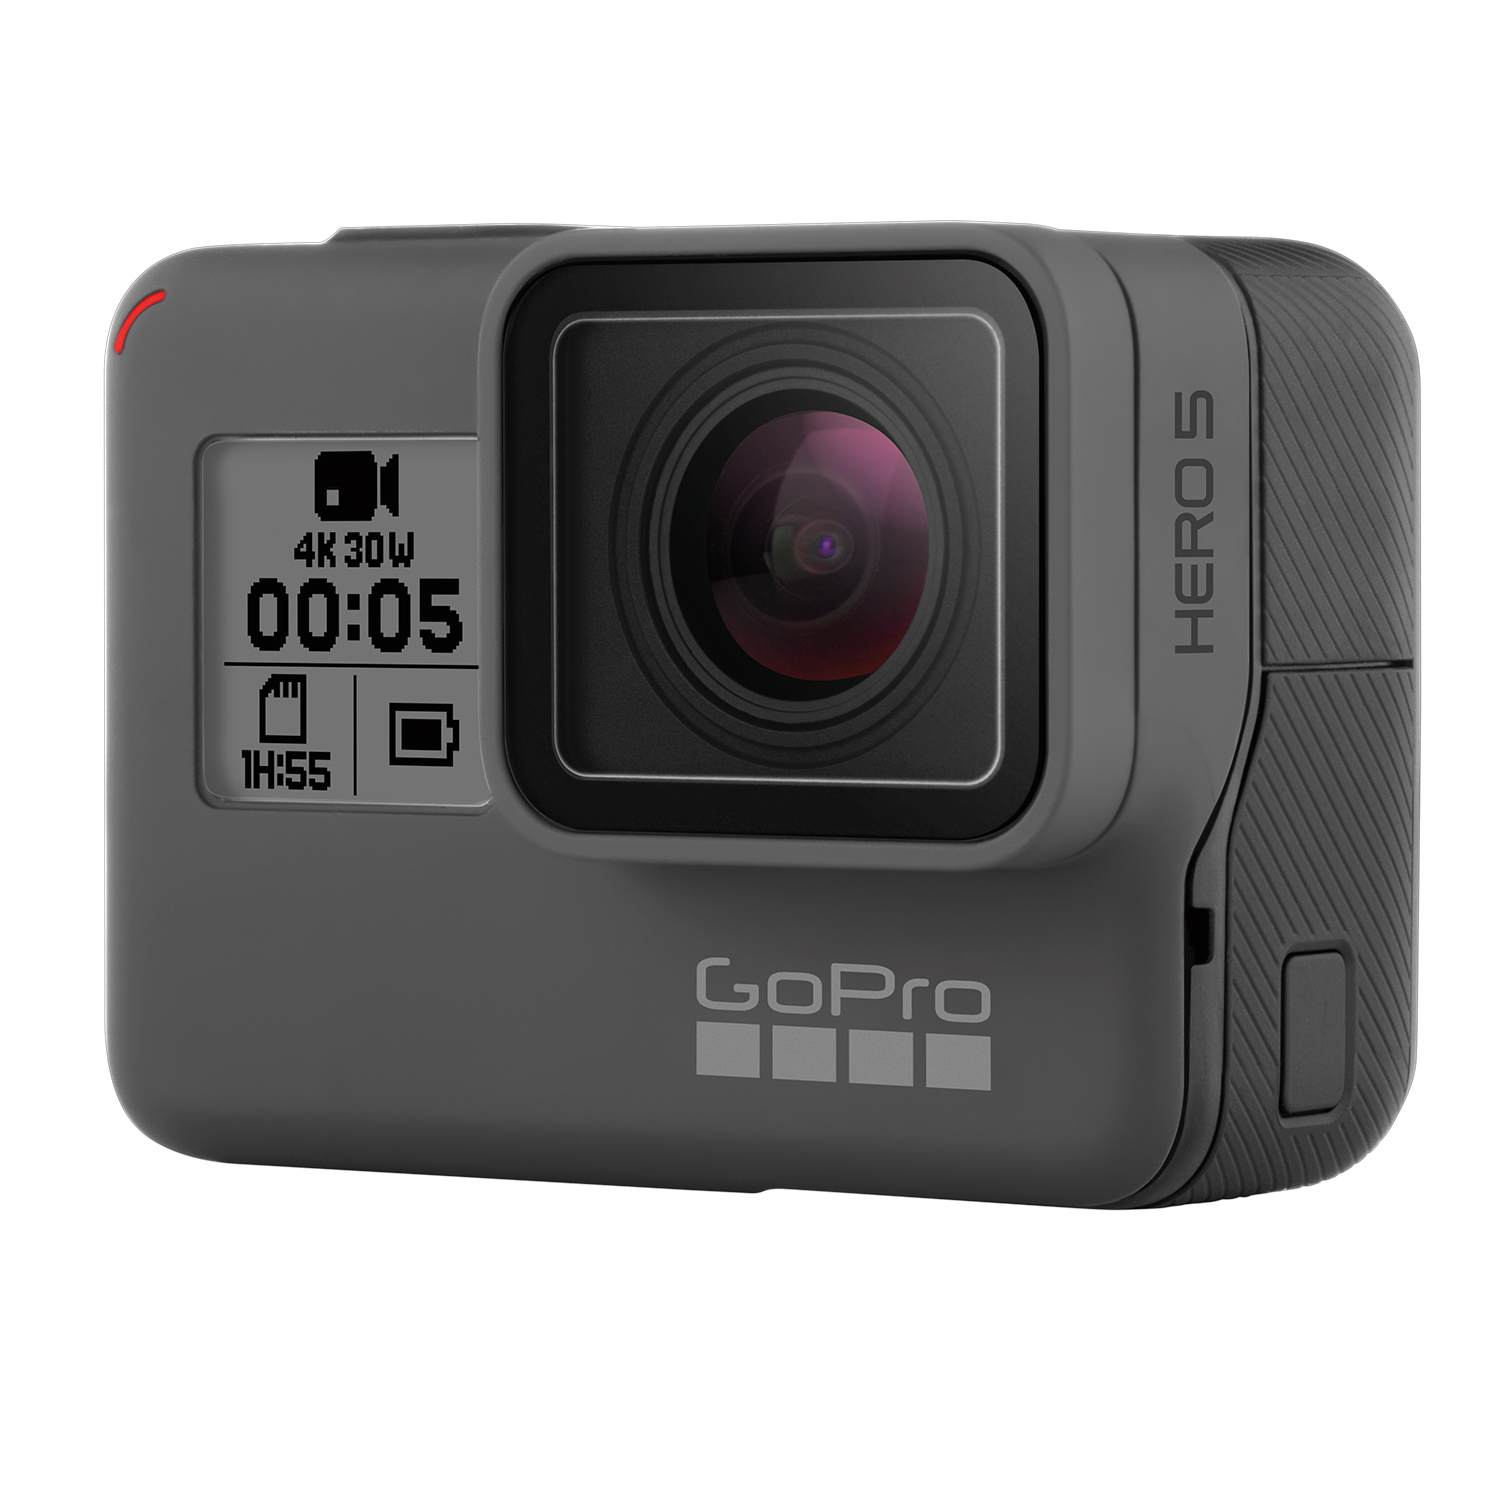 GoPro HERO5 Black 4K Action Camera-scroll down for special bundle offer